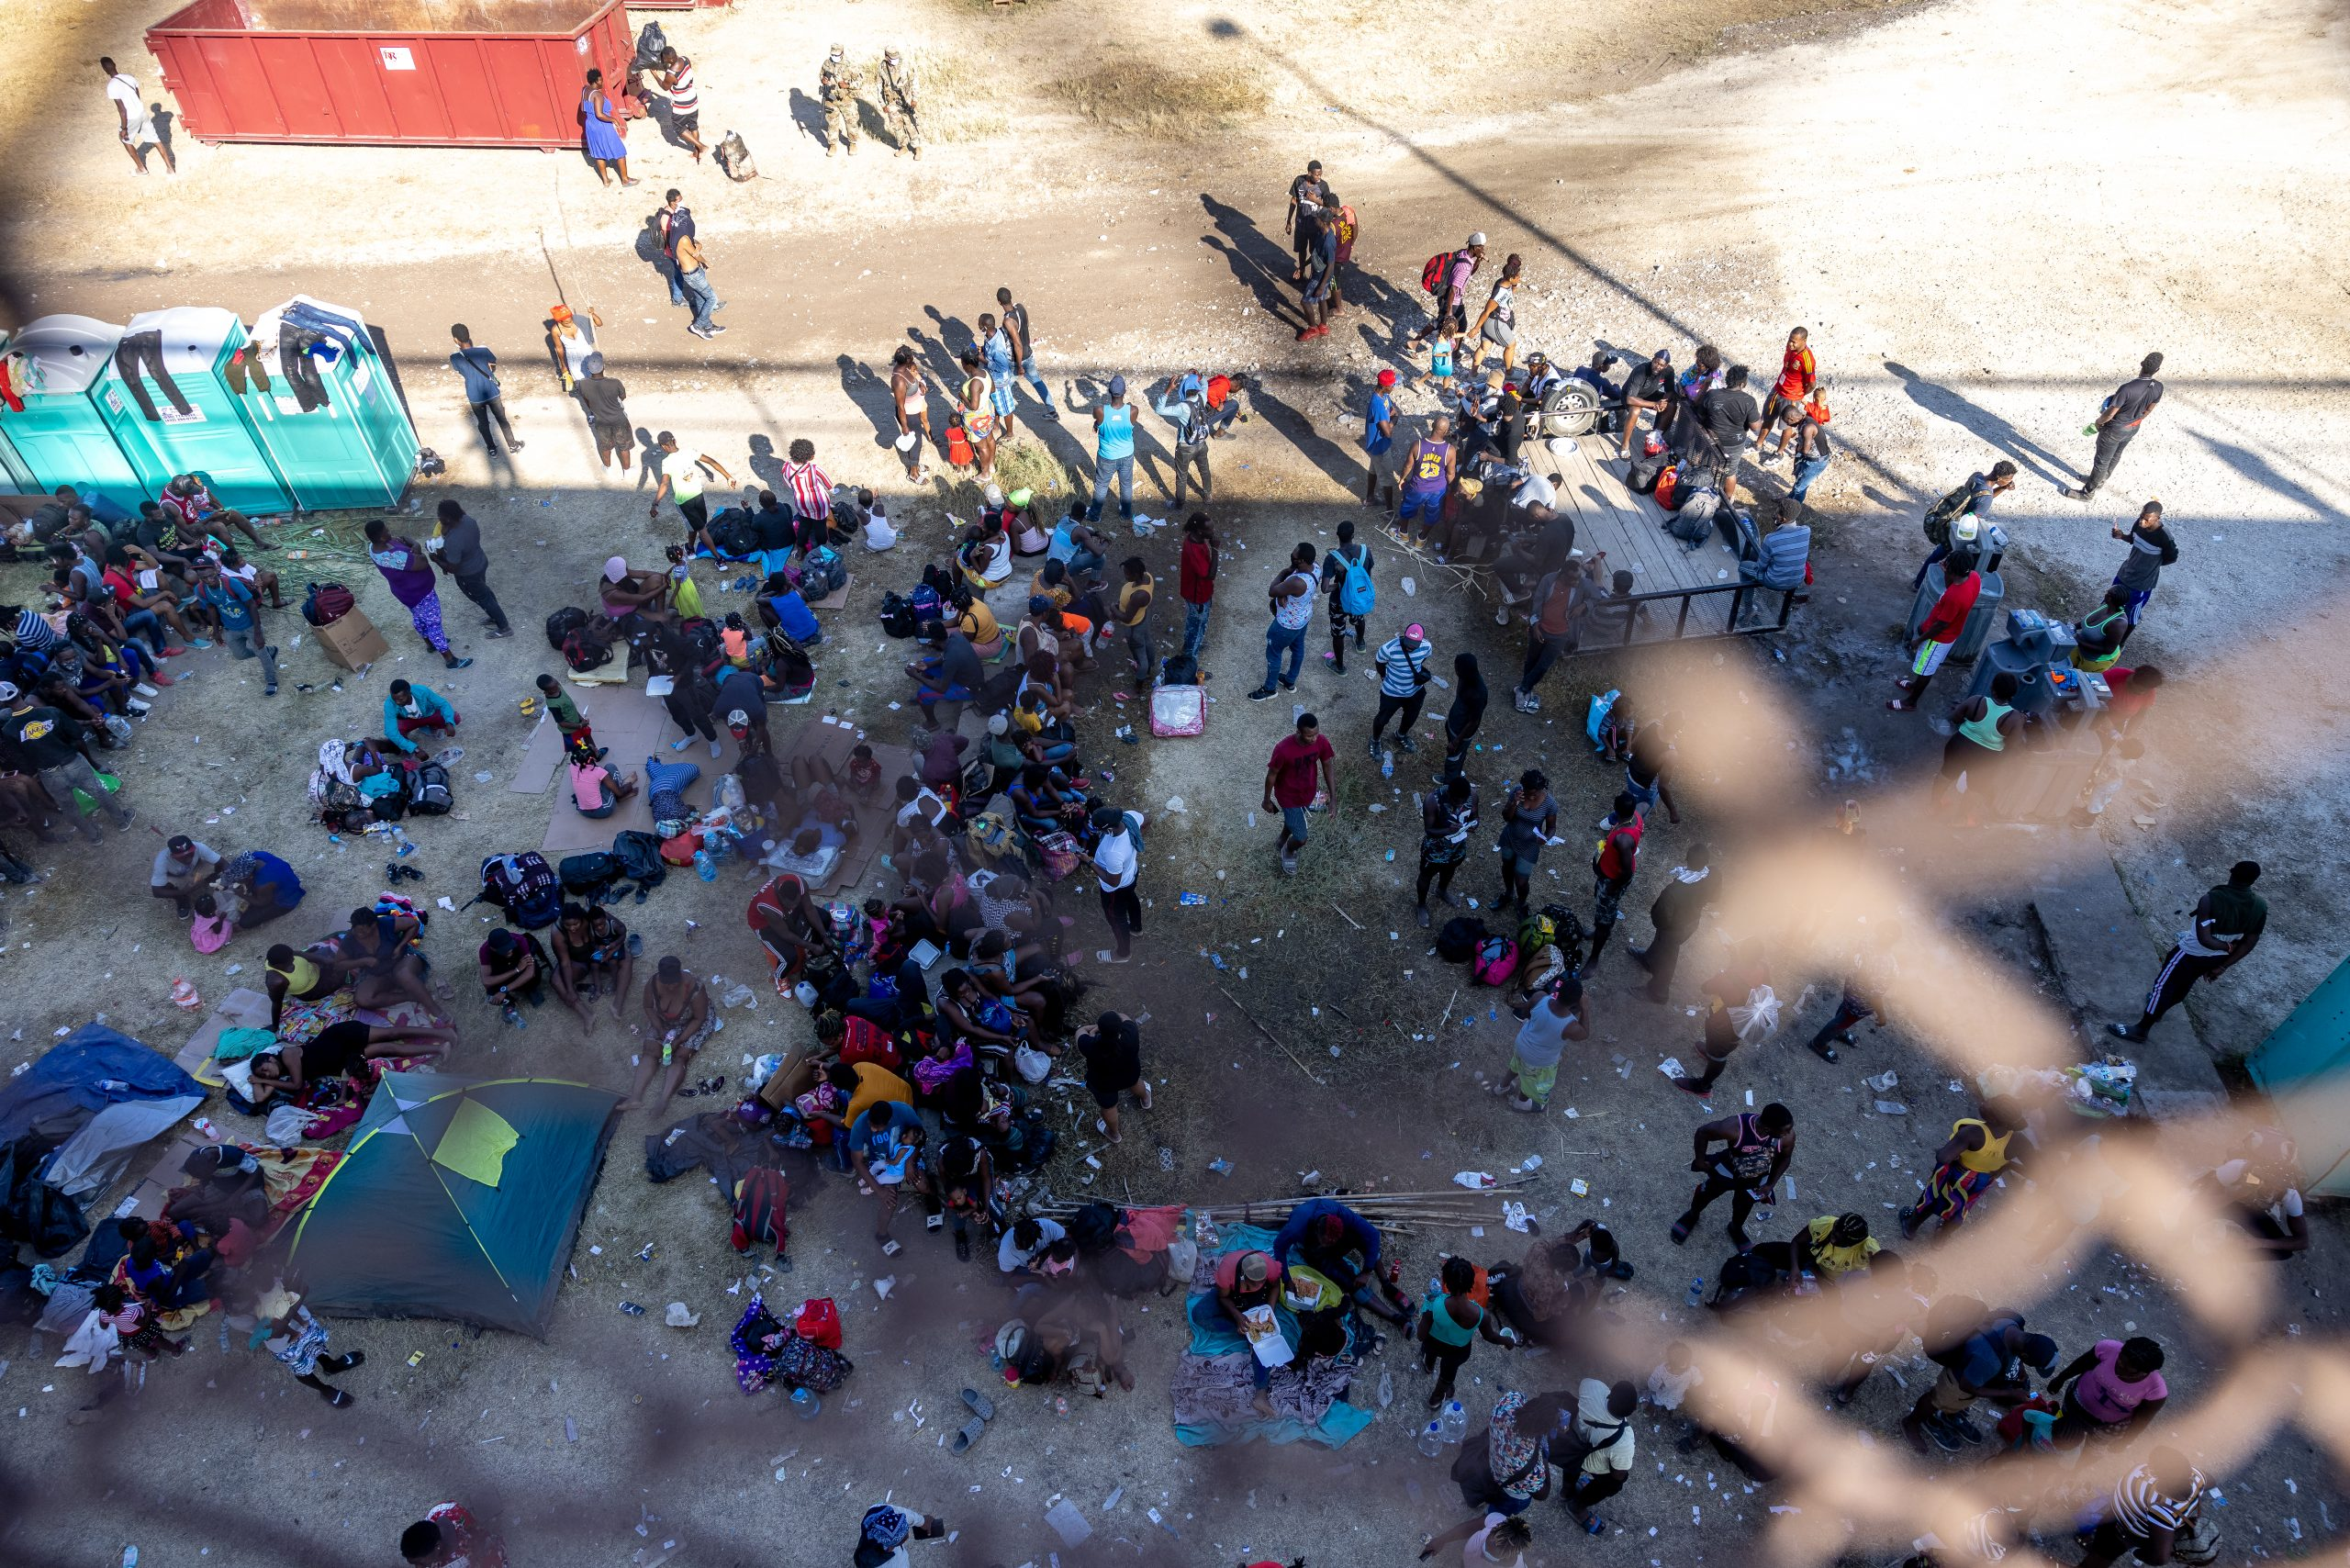 U.S. to deport 'massive' number of Haitians from Texas border 6